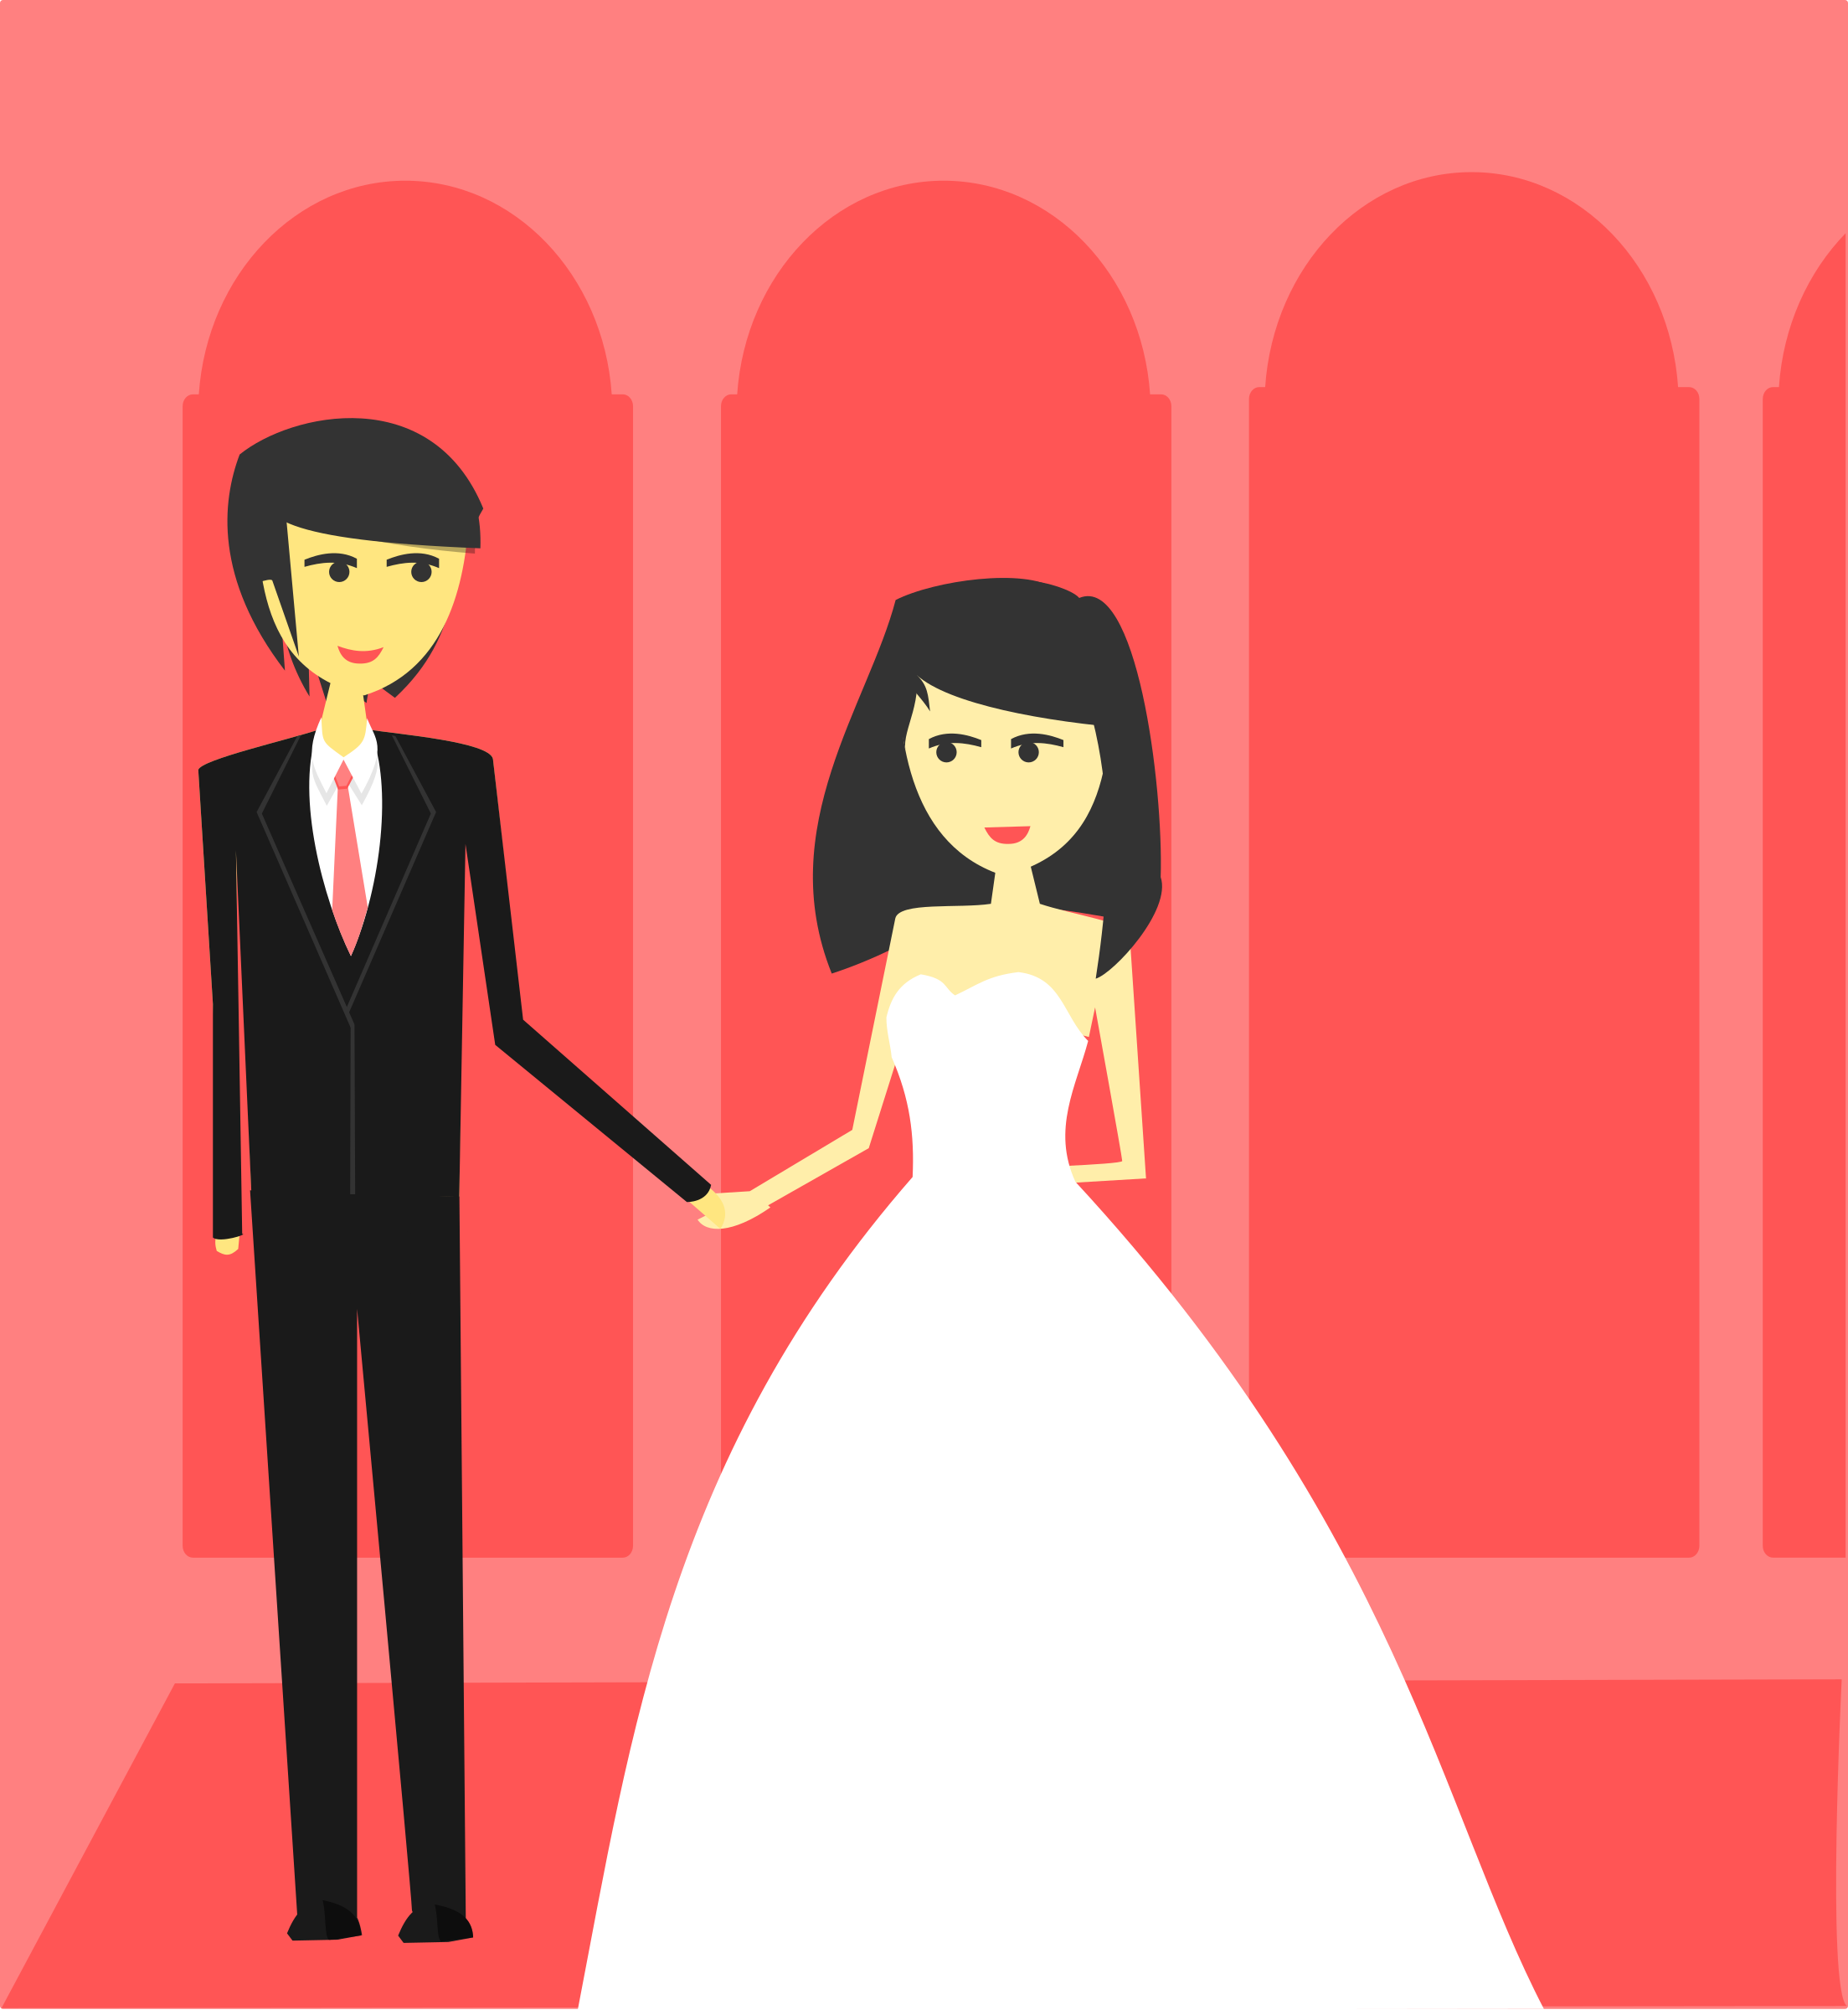 Simple Wedding illustration  by Vexagrafi